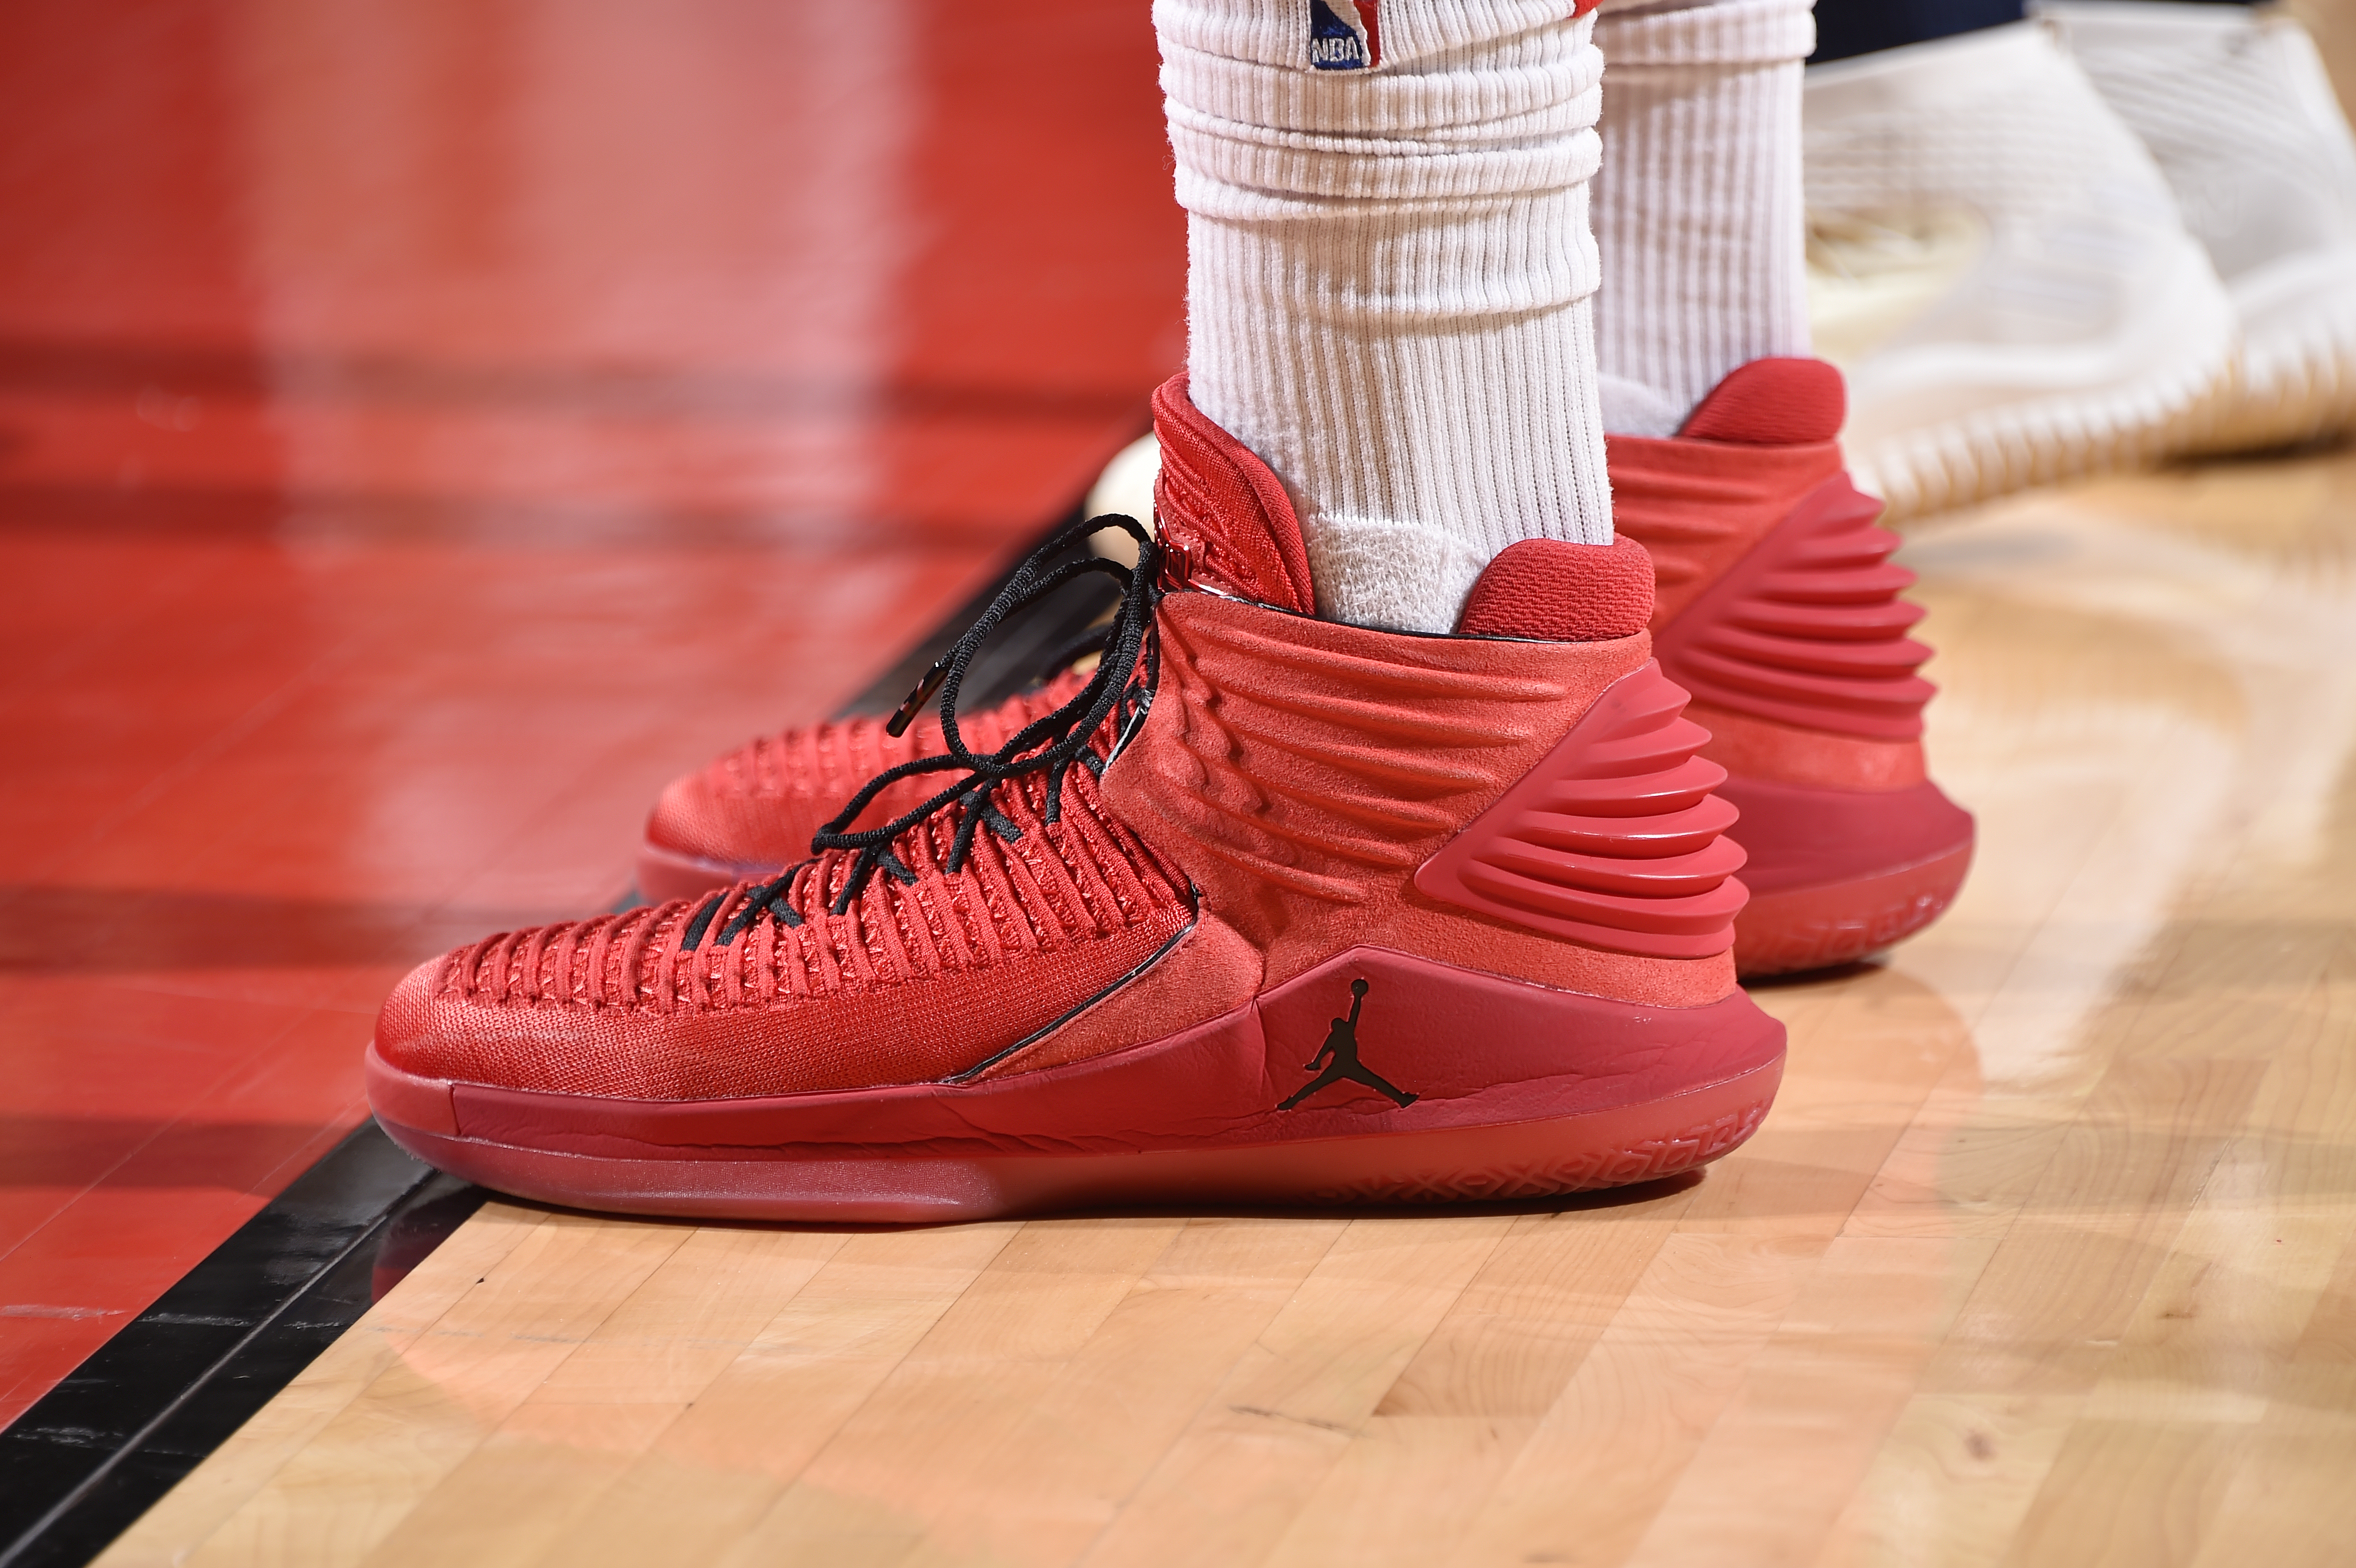 ddb735590d4d The sneakers of P.J. Tucker of the Houston Rockets during the second half  of Game 1 against the Minnesota Timberwolves in the first round of the 2018  NBA ...